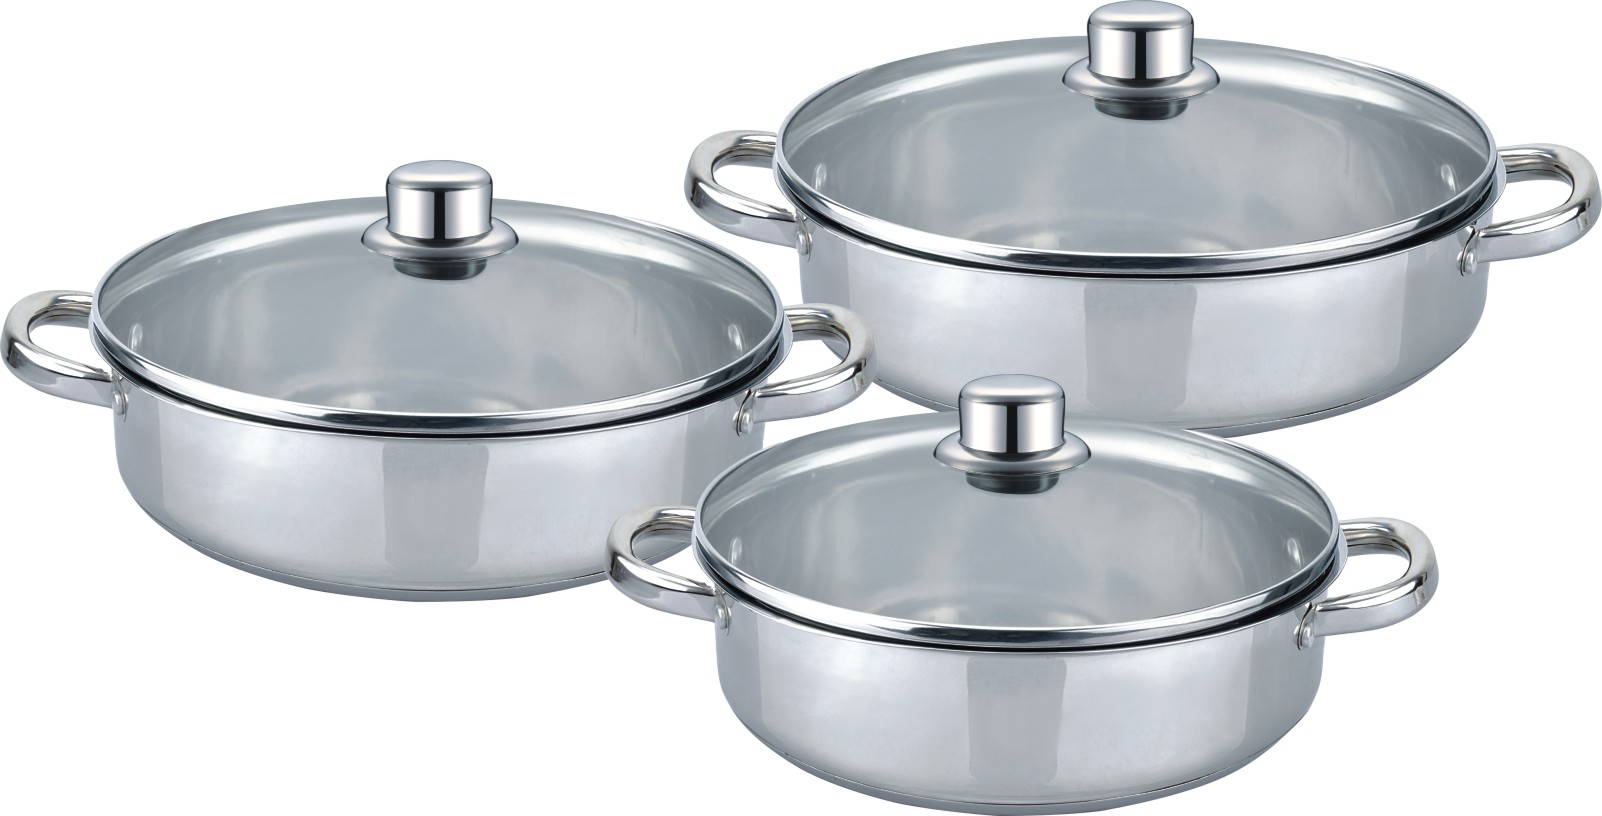 Low Casserole 6pcs cookware set